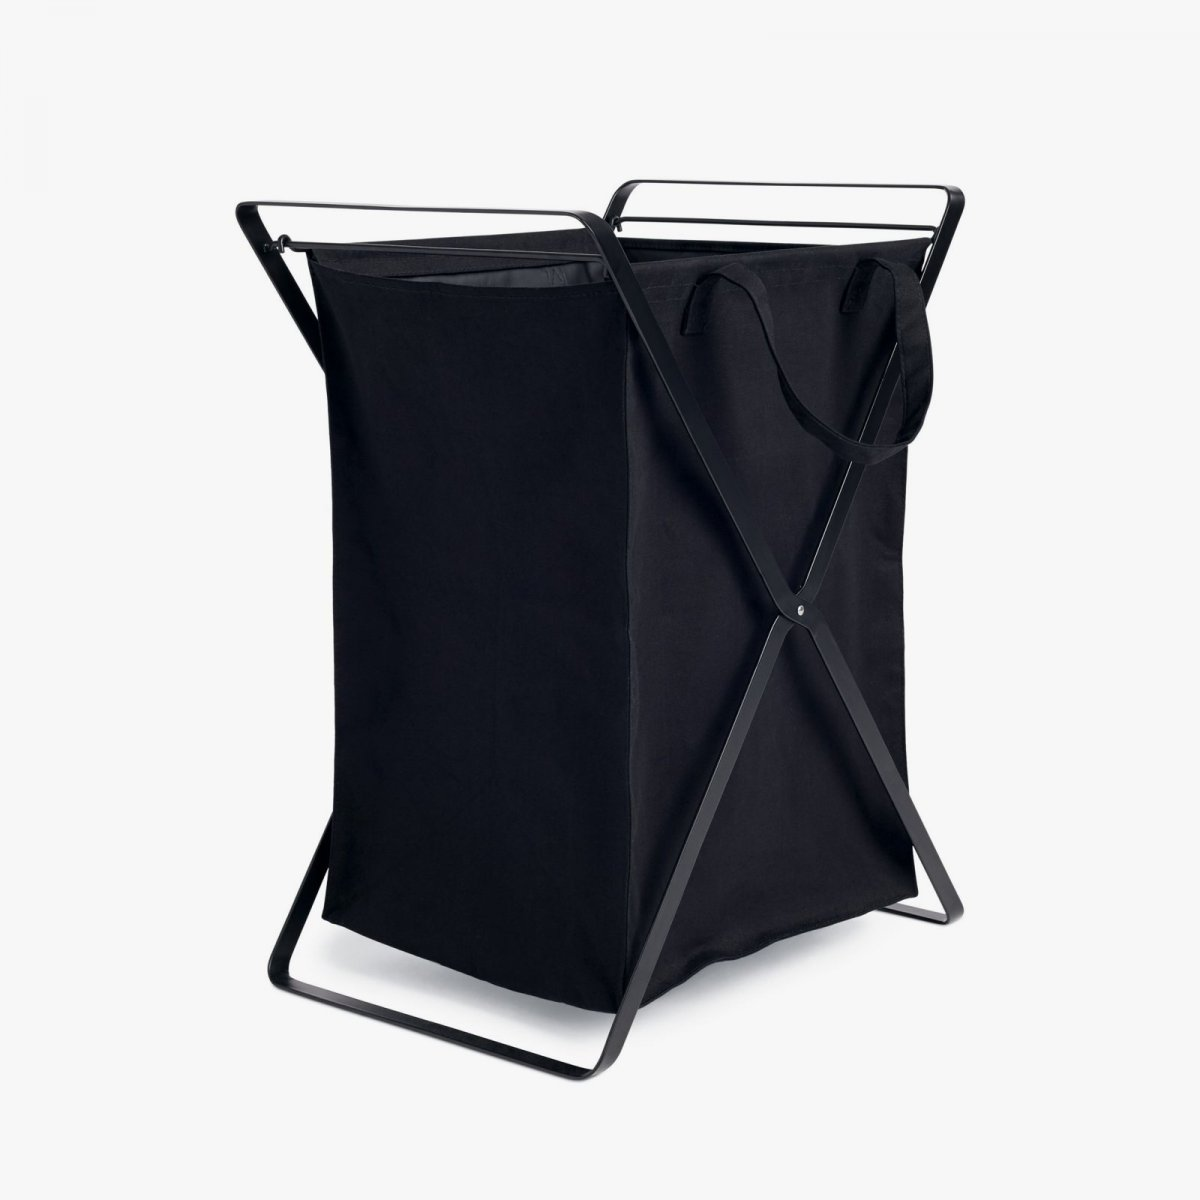 Tower Laundry Basket, L, black.